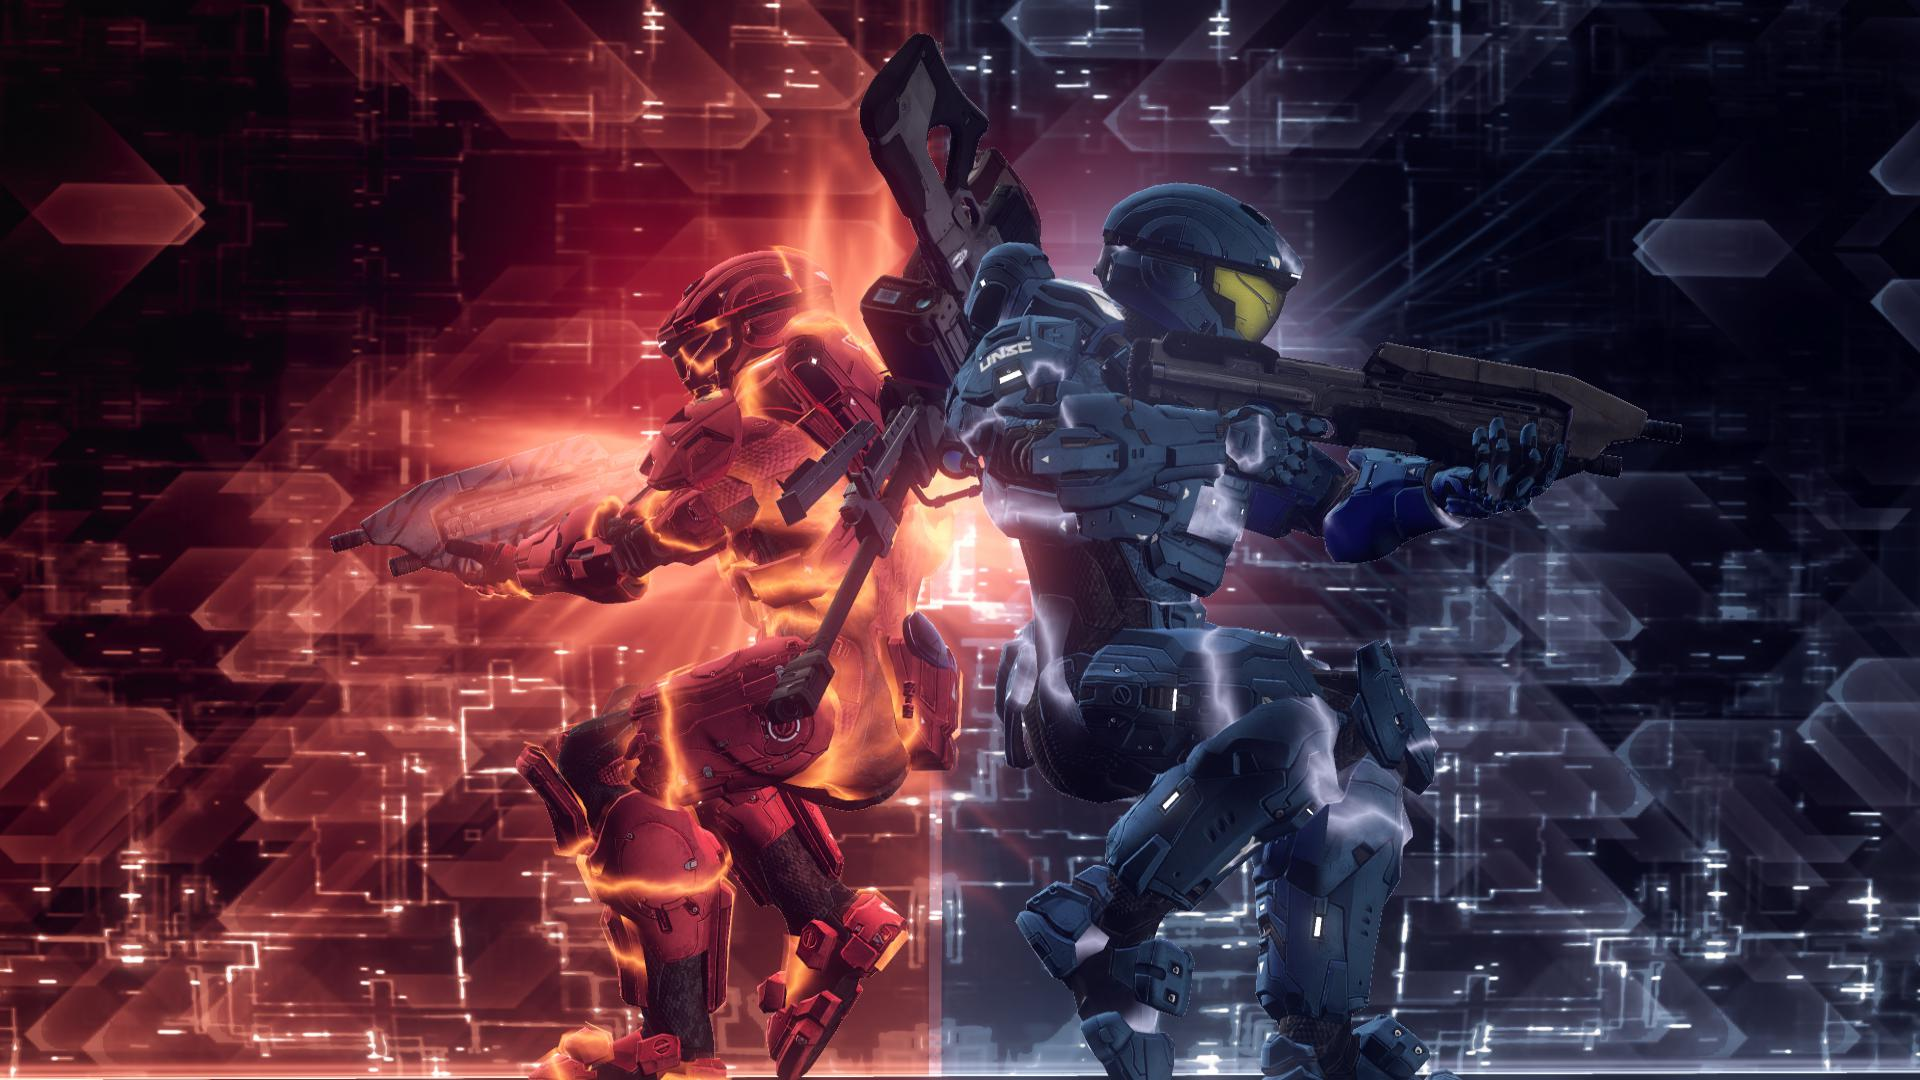 Free Download Red Vs Blue Wallpapers 1920x1080 For Your Desktop